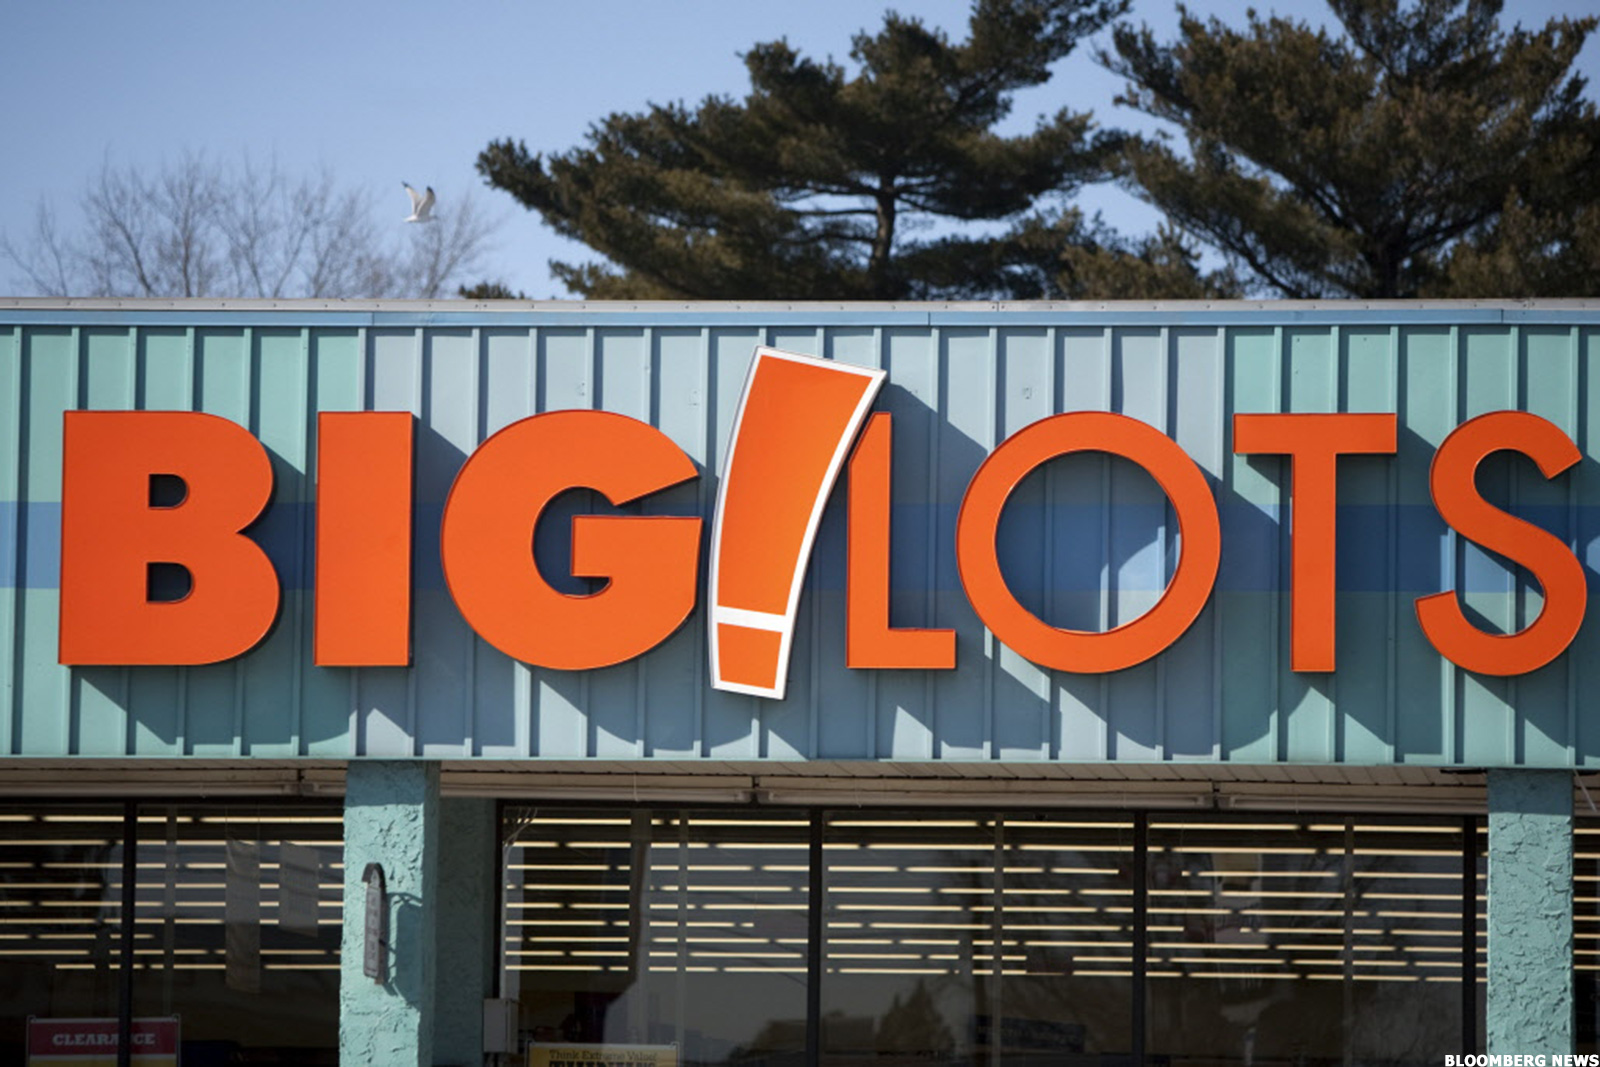 Big Lots Hours & Locations. The regular opening hours of most Big Lots locations on weekdays are from Monday to Friday 9AM-9PM, in the weekend on Saturday 9AM-9PM and on Sunday 9AM-9PM. Find the actual business hours for today or other days in the Big Lots branch locator.